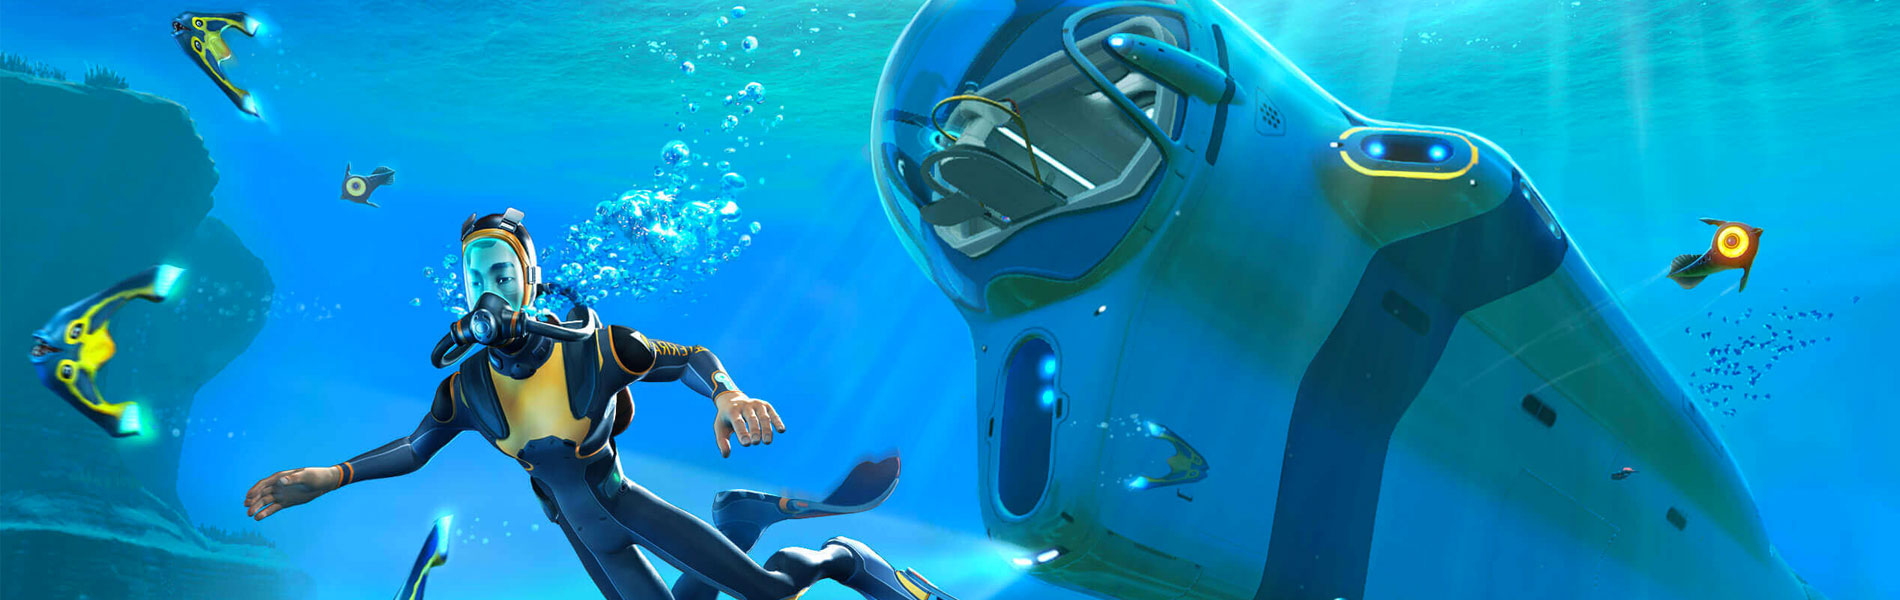 Get the Gift of Subnautica, Now Available Free for a Limited